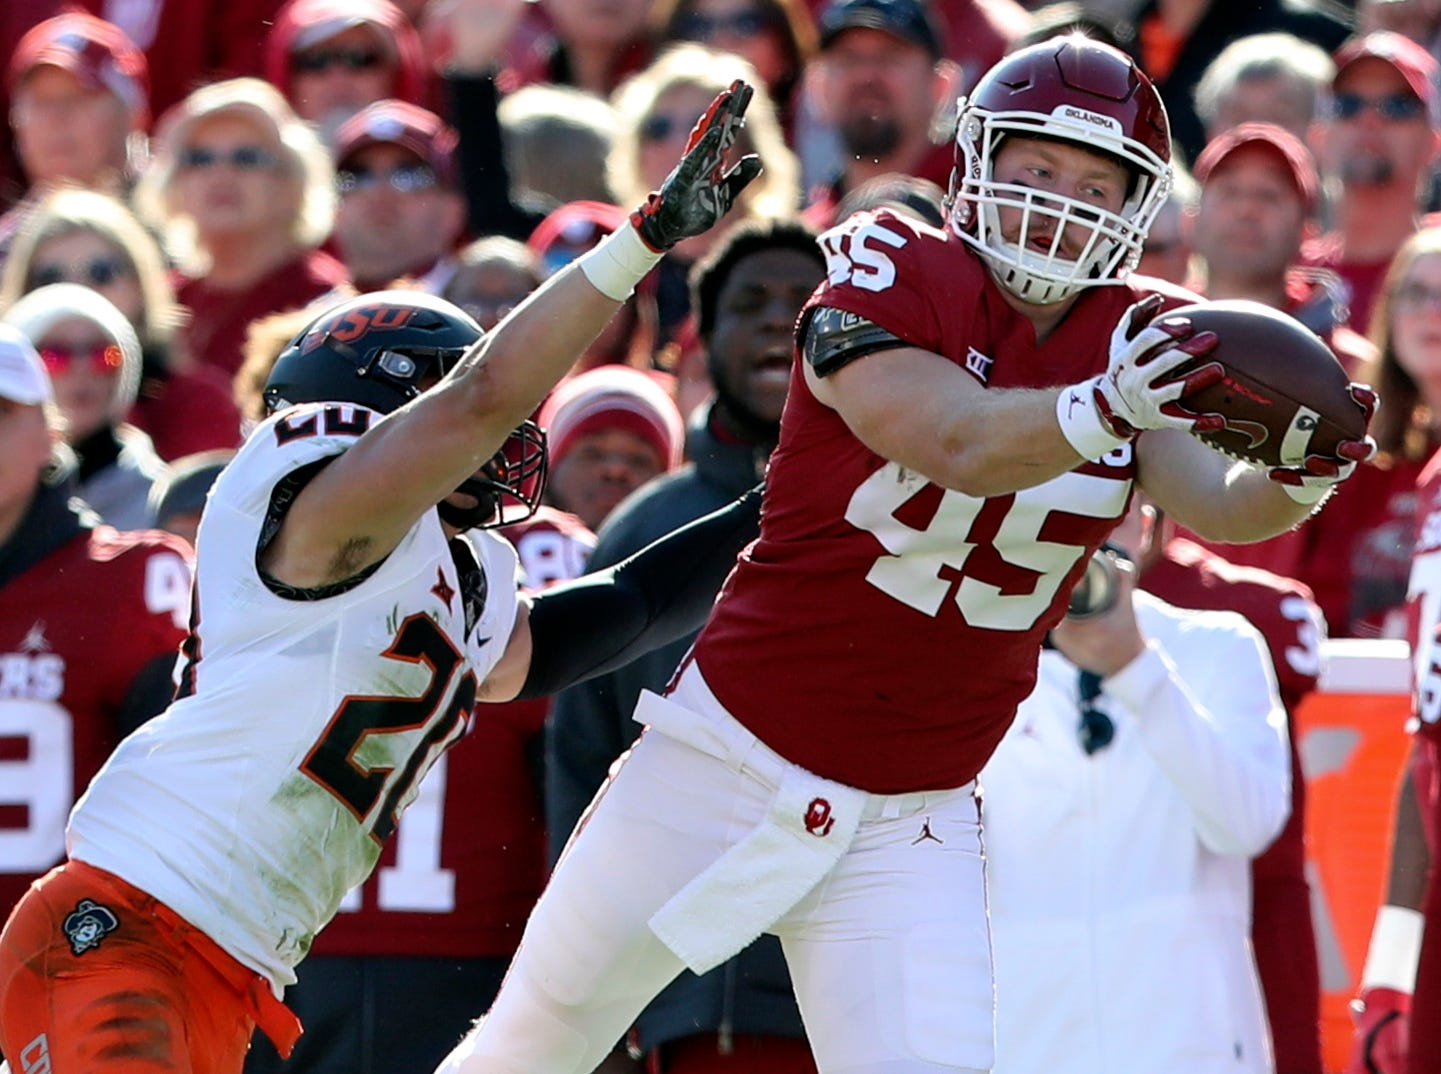 Oklahoma Sooners fullback Carson Meier (45) makes a catch past Oklahoma State Cowboys safety Malcolm Rodriguez (20) during the first quarter at Gaylord Family-Oklahoma Memorial Stadium.